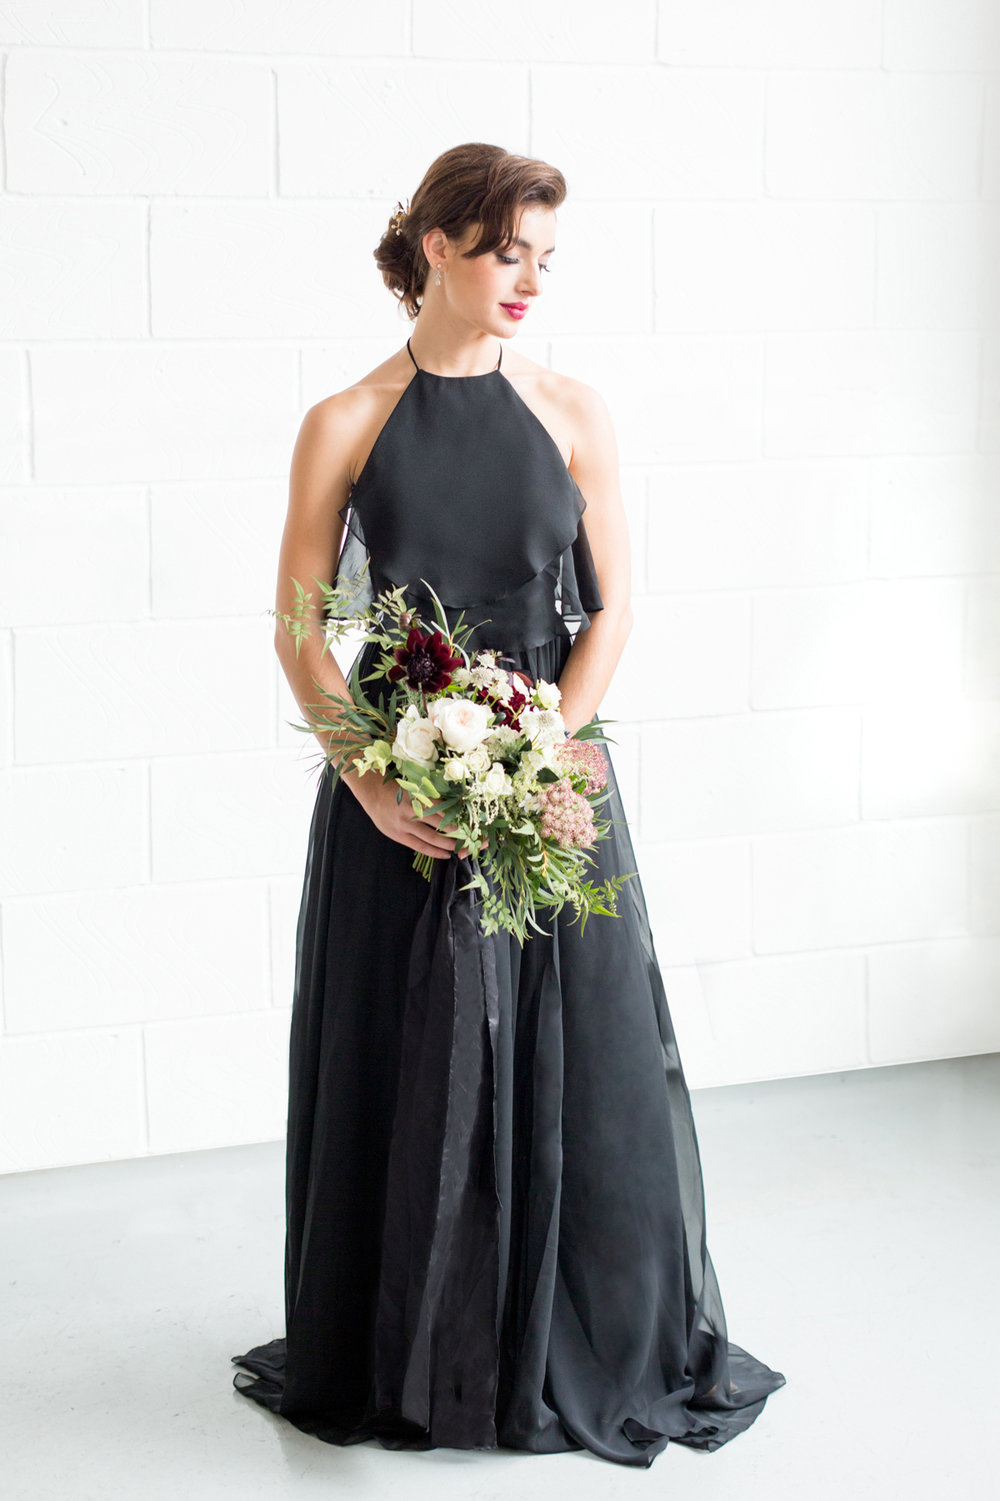 Black Bridesmaid Dress - Industrial Warehouse Wedding -- The Overwhelmed Bride - Wedding Blog